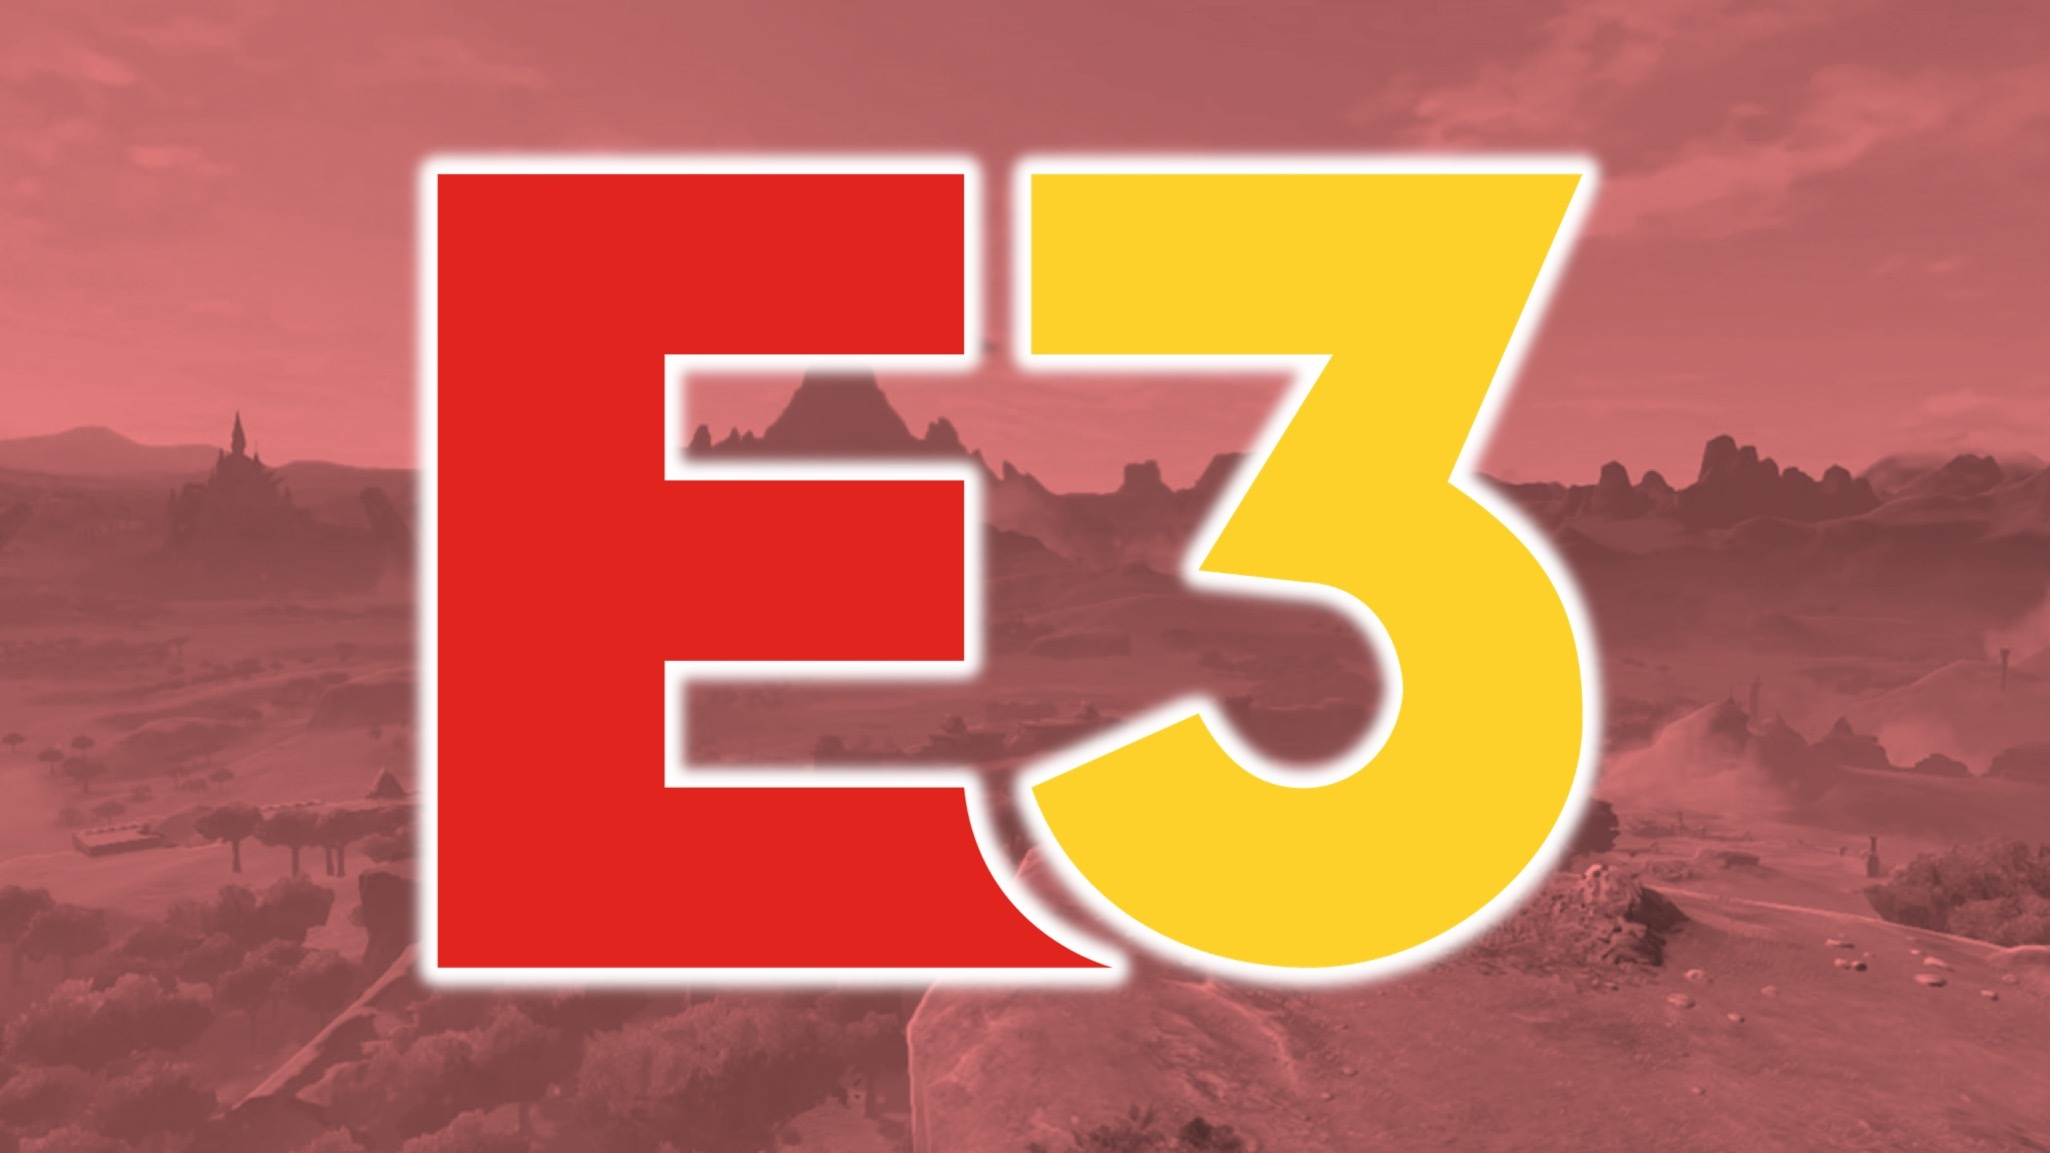 E3 2020 Pitch Document Reveals a Shift Toward Influencers and Celebrities